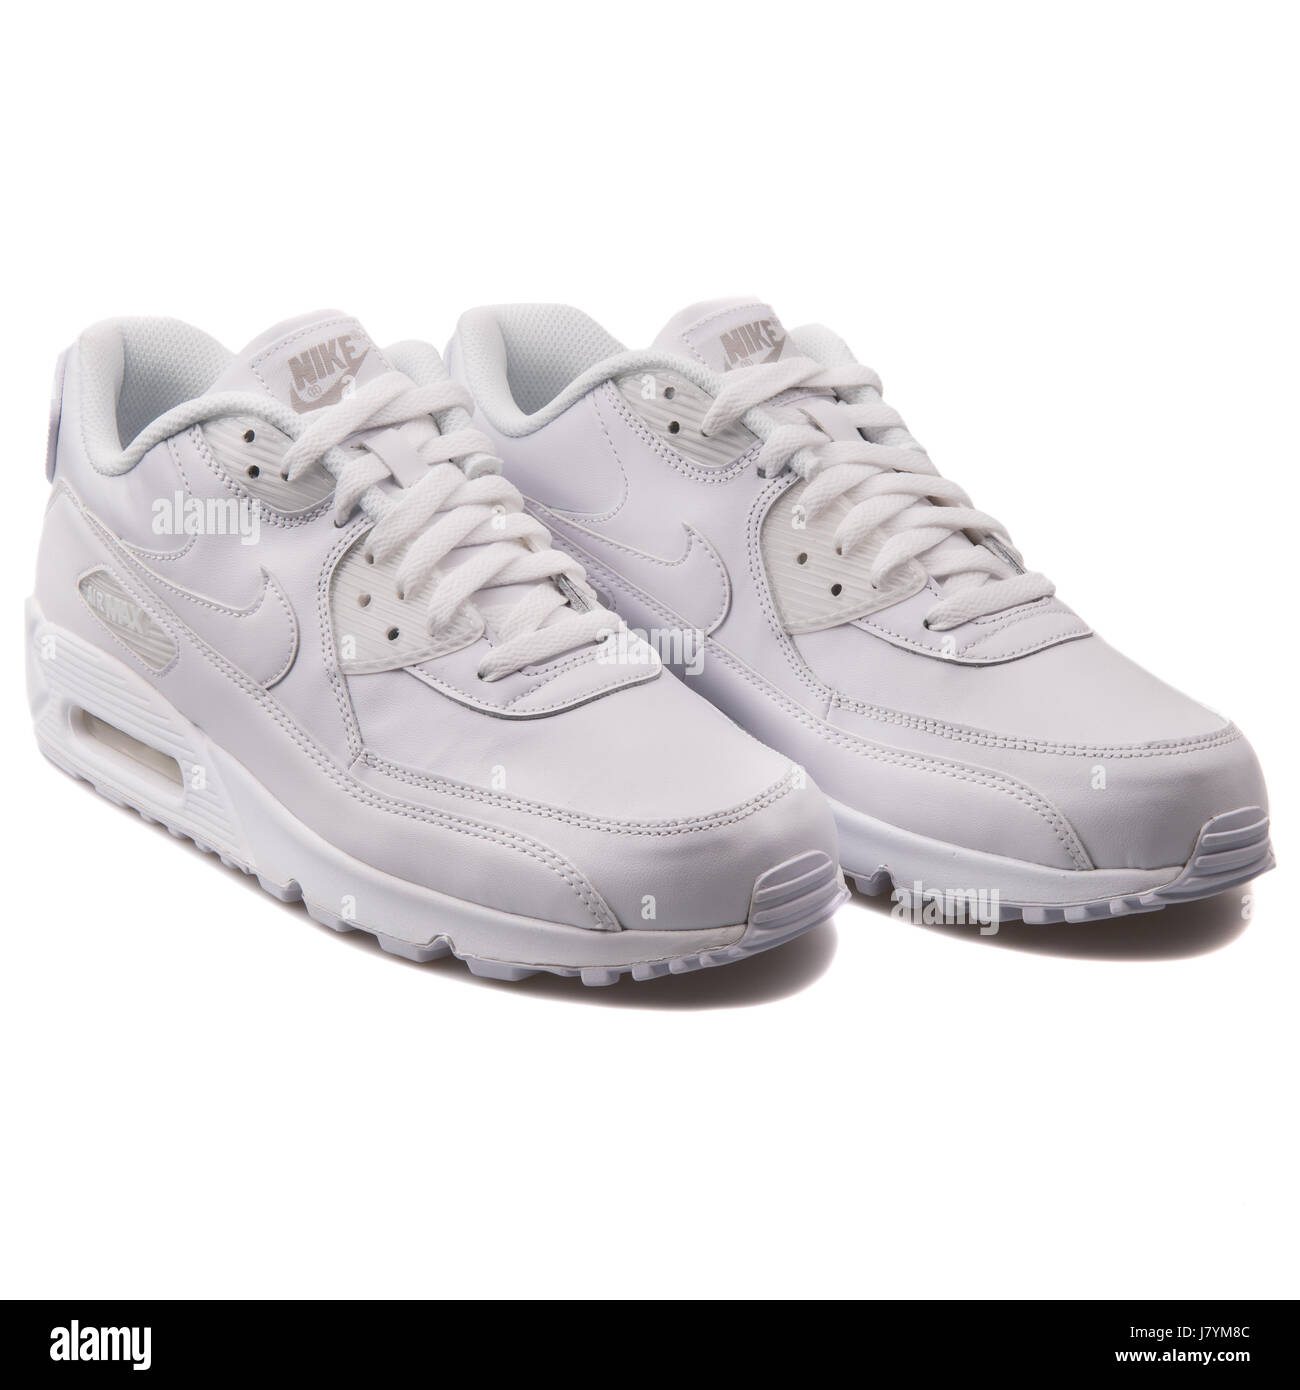 6b62f8f7c3 Nike Air Max 90 Leather White Men's Leather Sports Sneakers - 302519-113